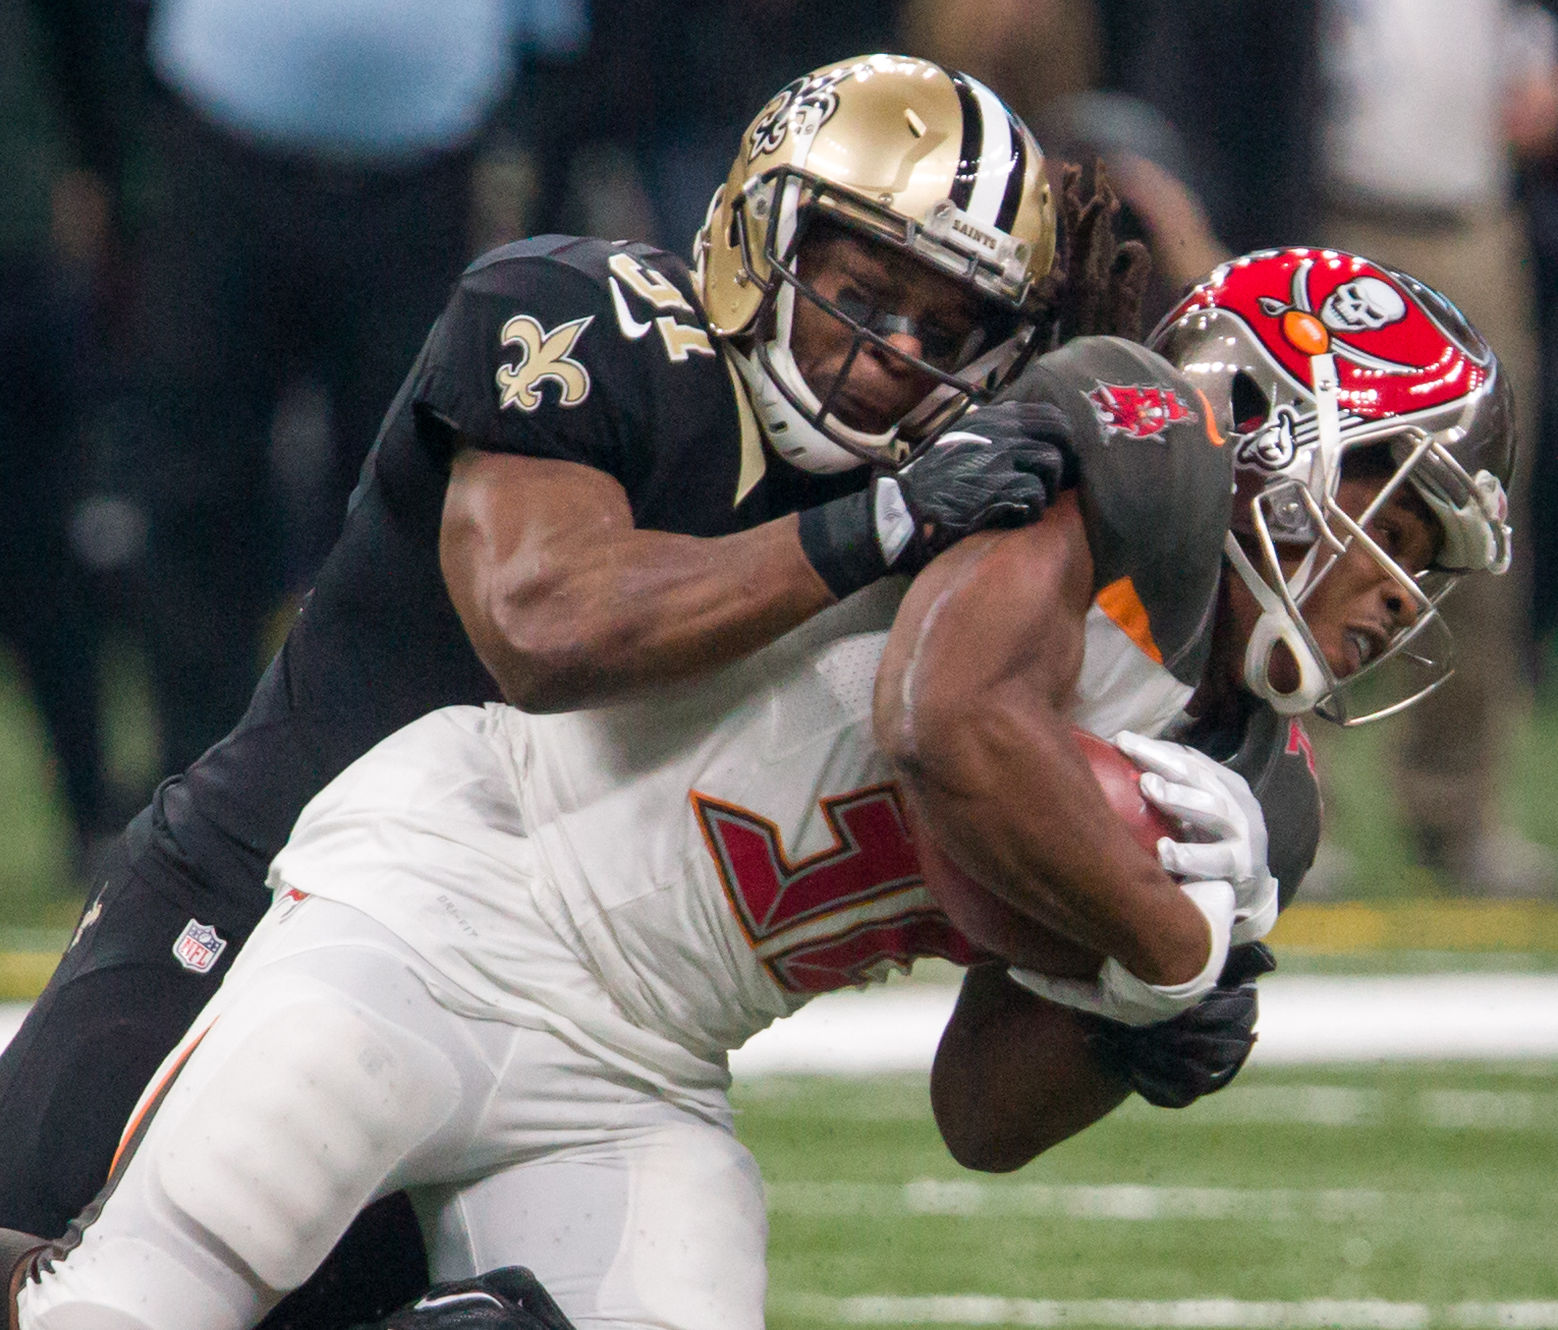 Panthers sign veteran safety Jairus Byrd to fill injury void